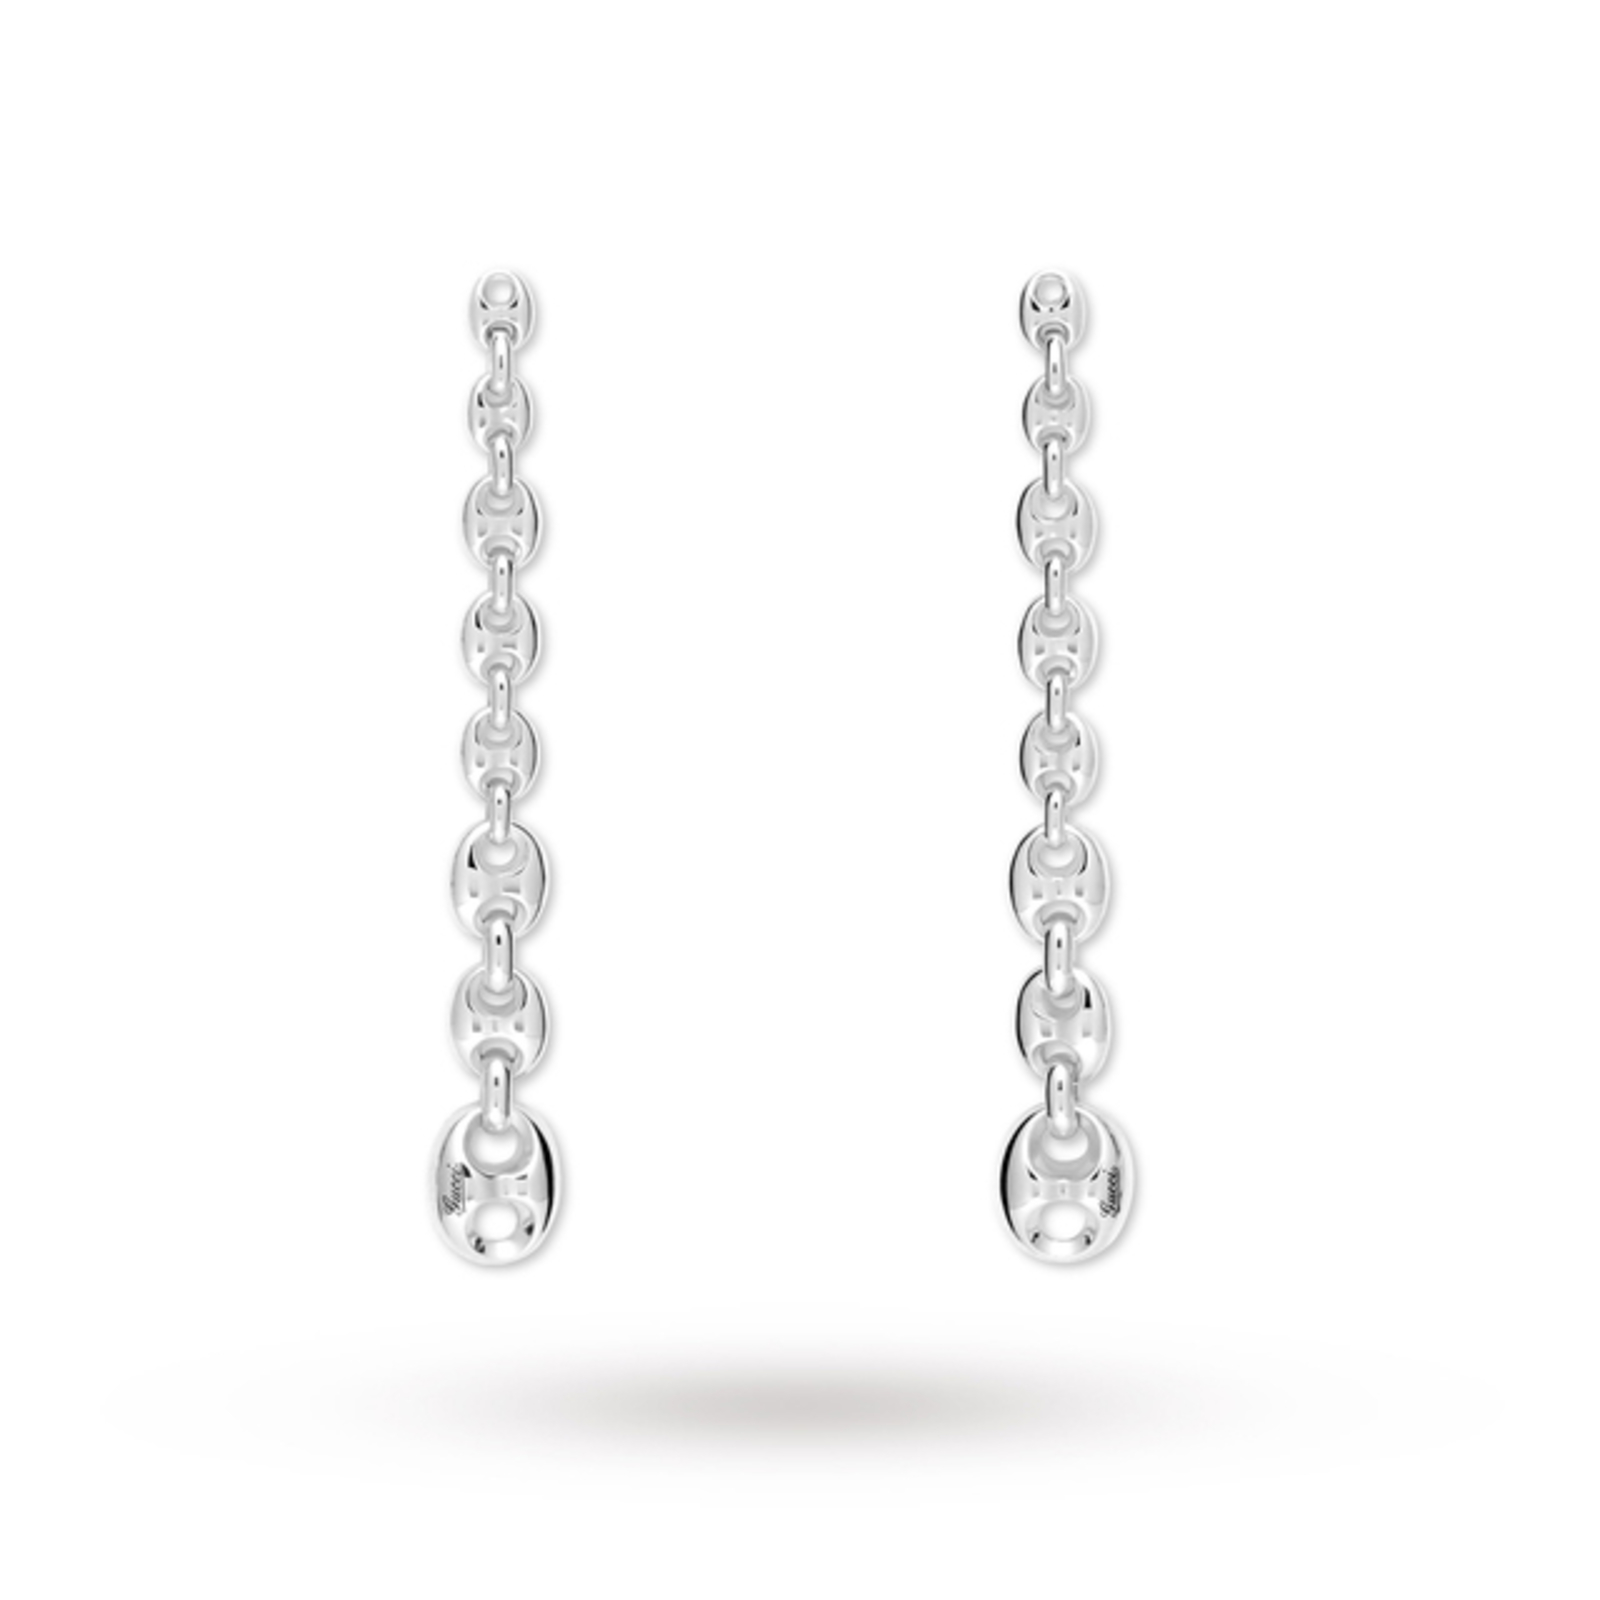 Gucci Marina Silver Drop Earrings